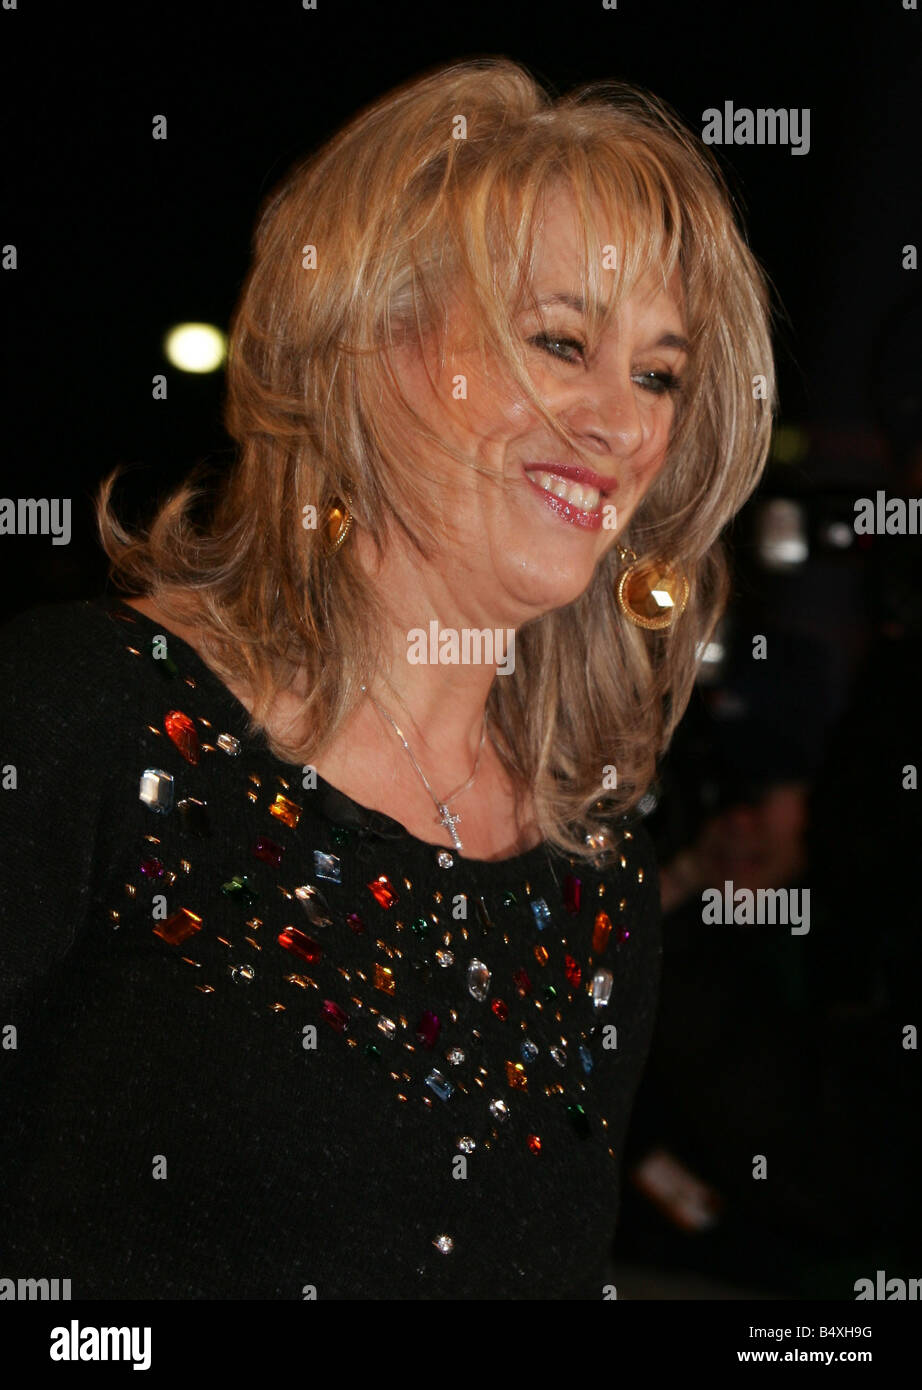 Carole Malone newspaper columnist enters the Celebrity Big Brother house 3rd January 2007 - Stock Image